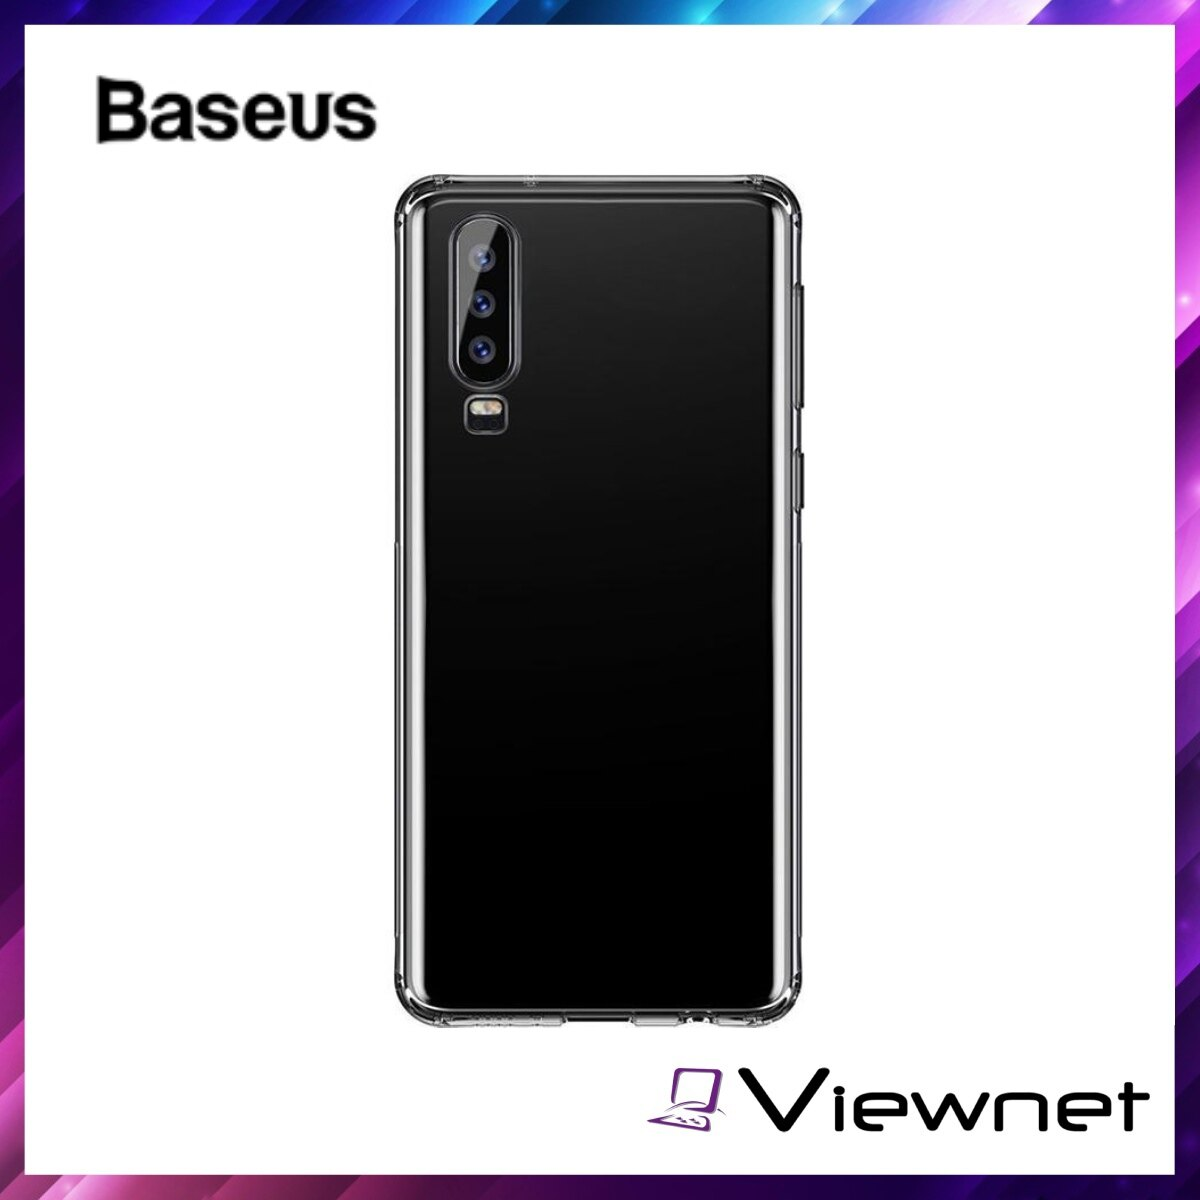 Baseus Simple Transparent Case For HUAWEI P30 / P30 Pro, Ultra Thin, Clear Soft Silicone, Anti-Knock, Dirt-resistant